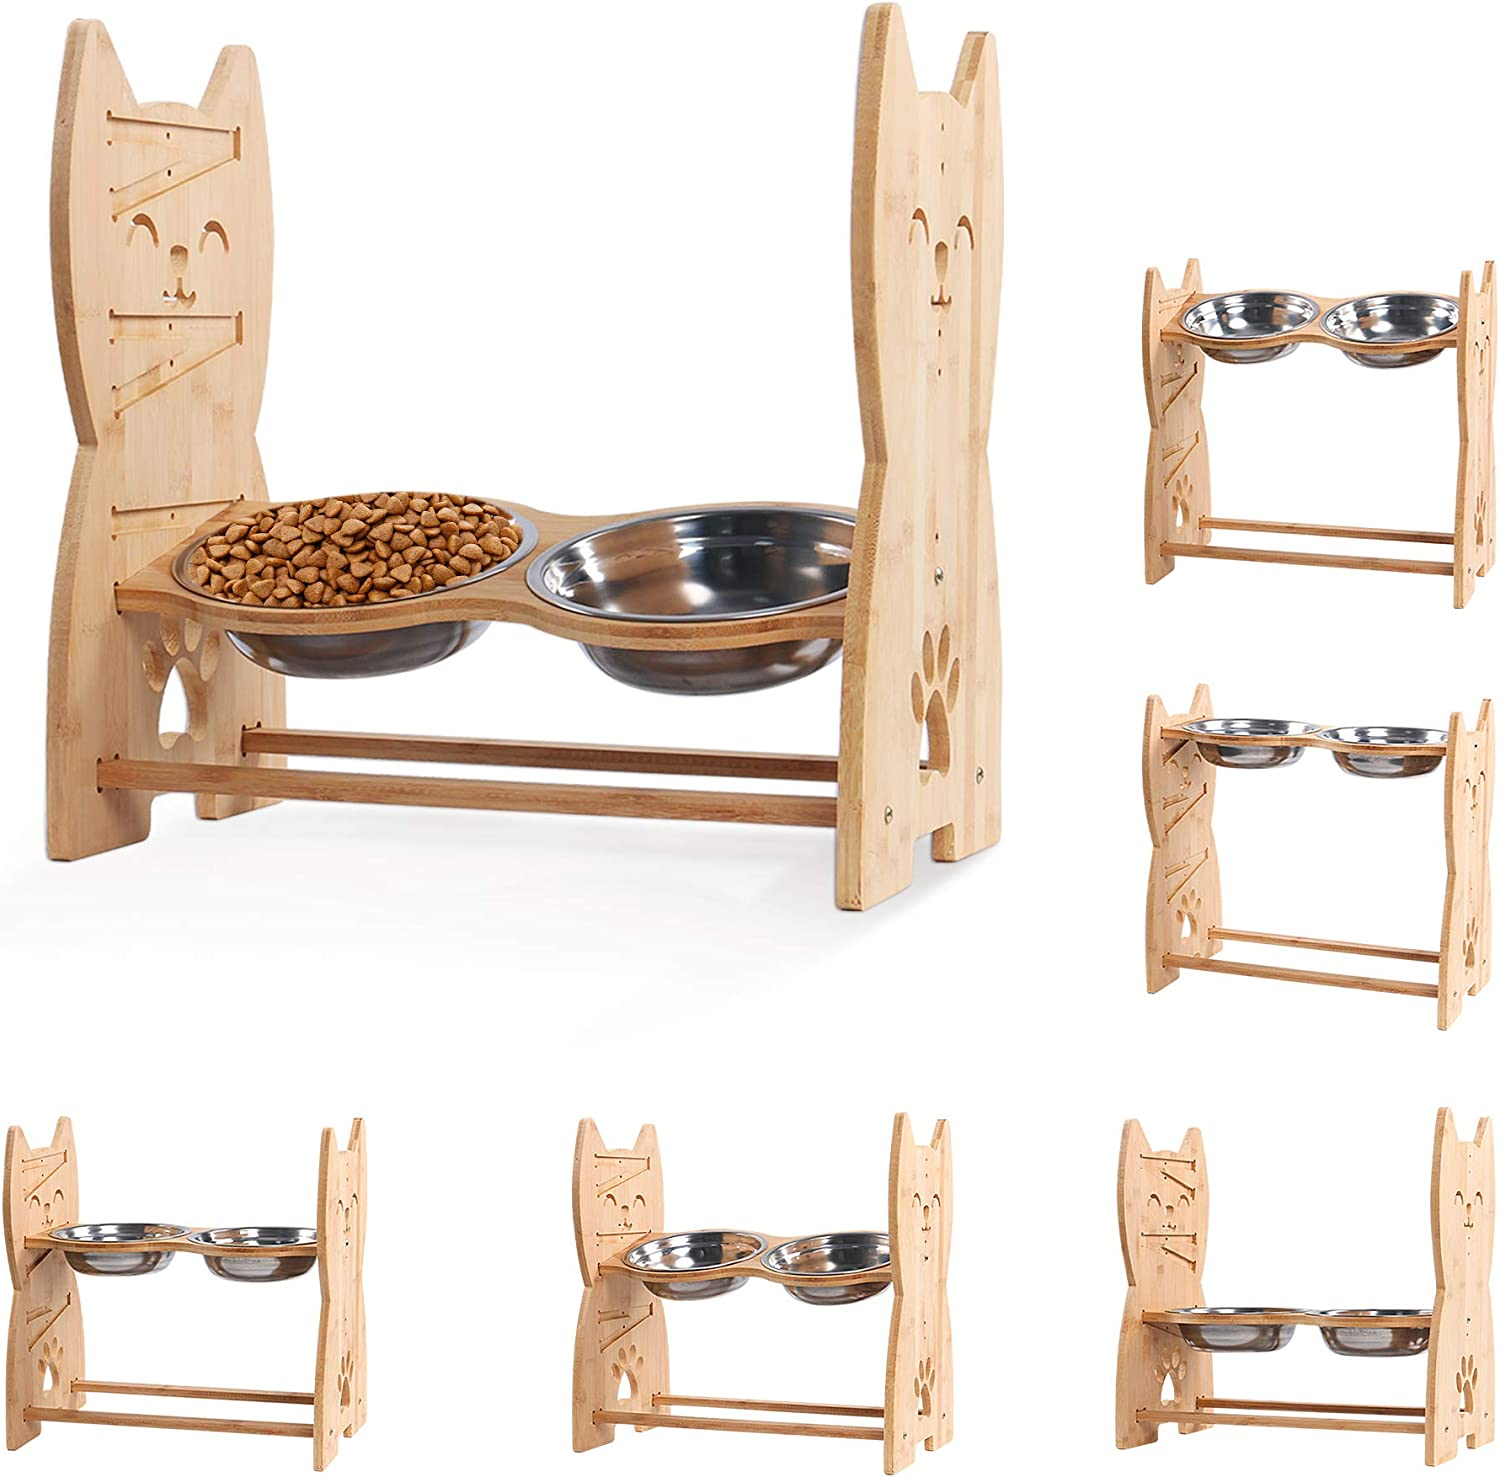 Niubya Dog Bowl with Elevated Stand, Bamboo Framed Raised Bowls for Cats and Small Dogs with Adjustable and Anti-Slip Legs, Include 2 Stainless Steel Bowls